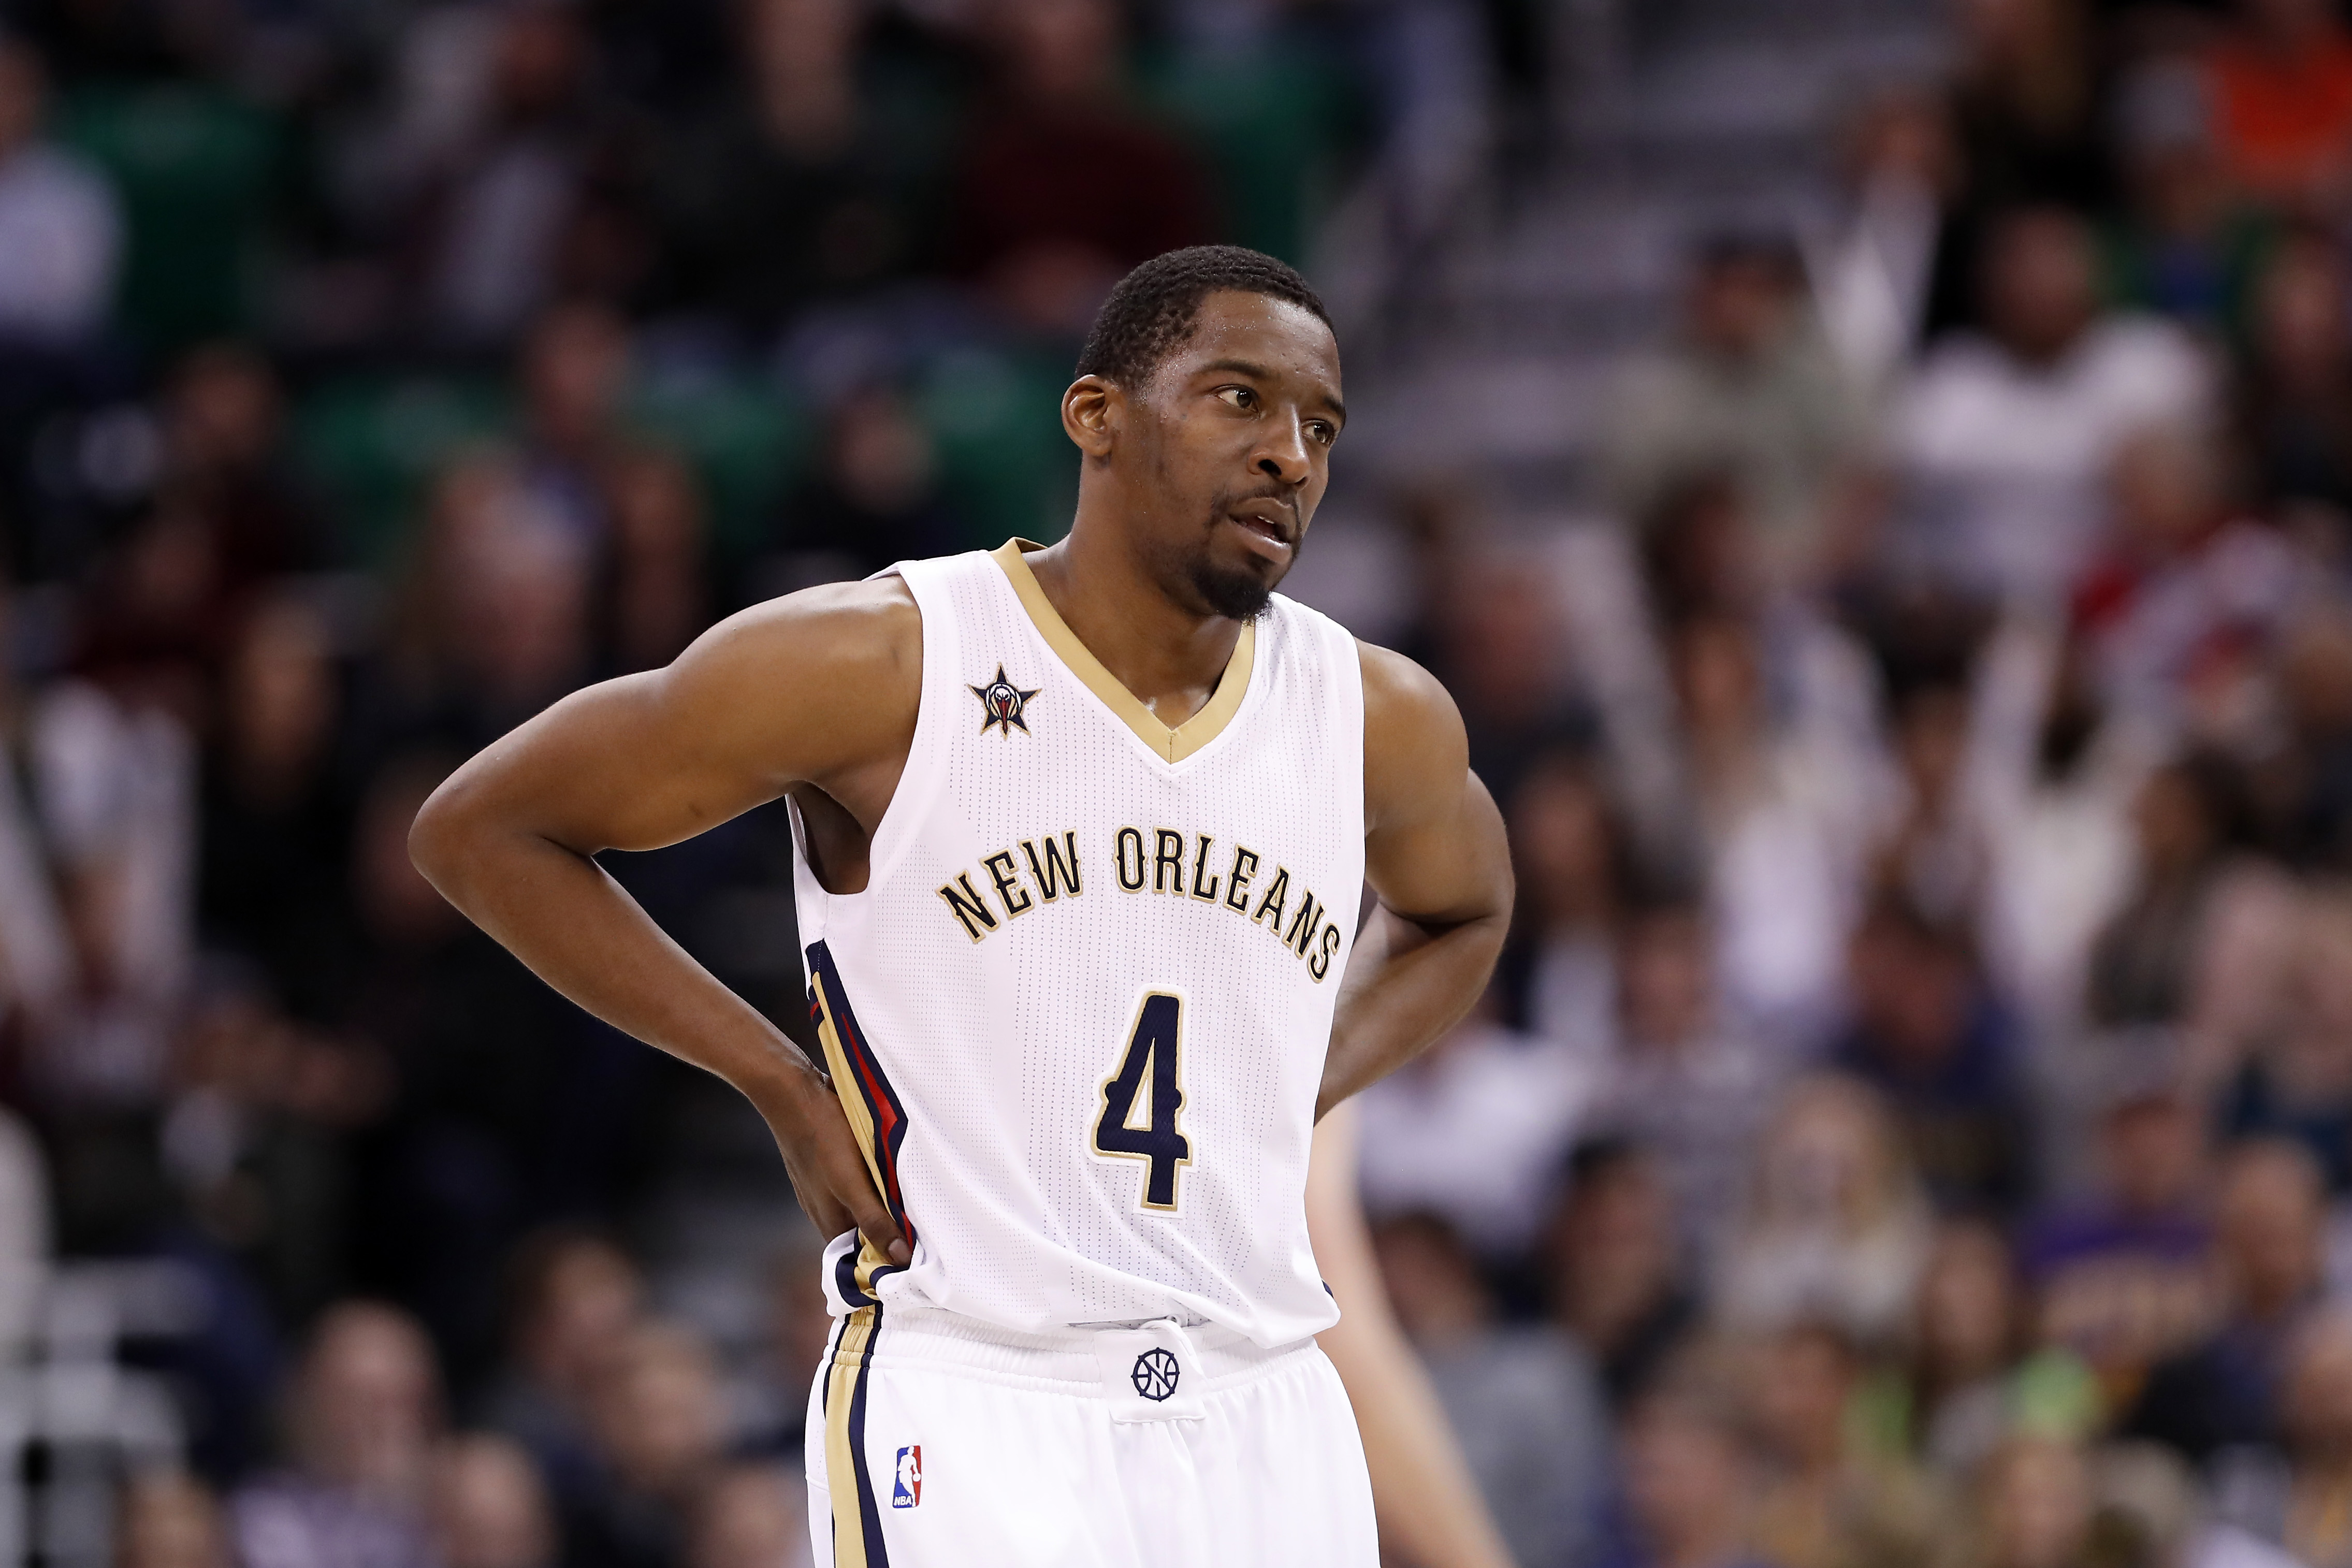 10 Questions With Jordan Crawford A K A Instant Grits